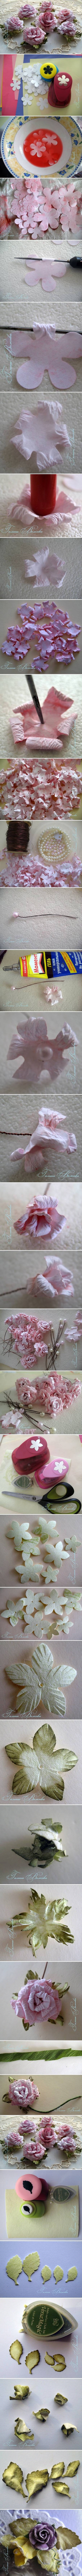 How to make Curly Paper Rosettes step by step DIY instructions